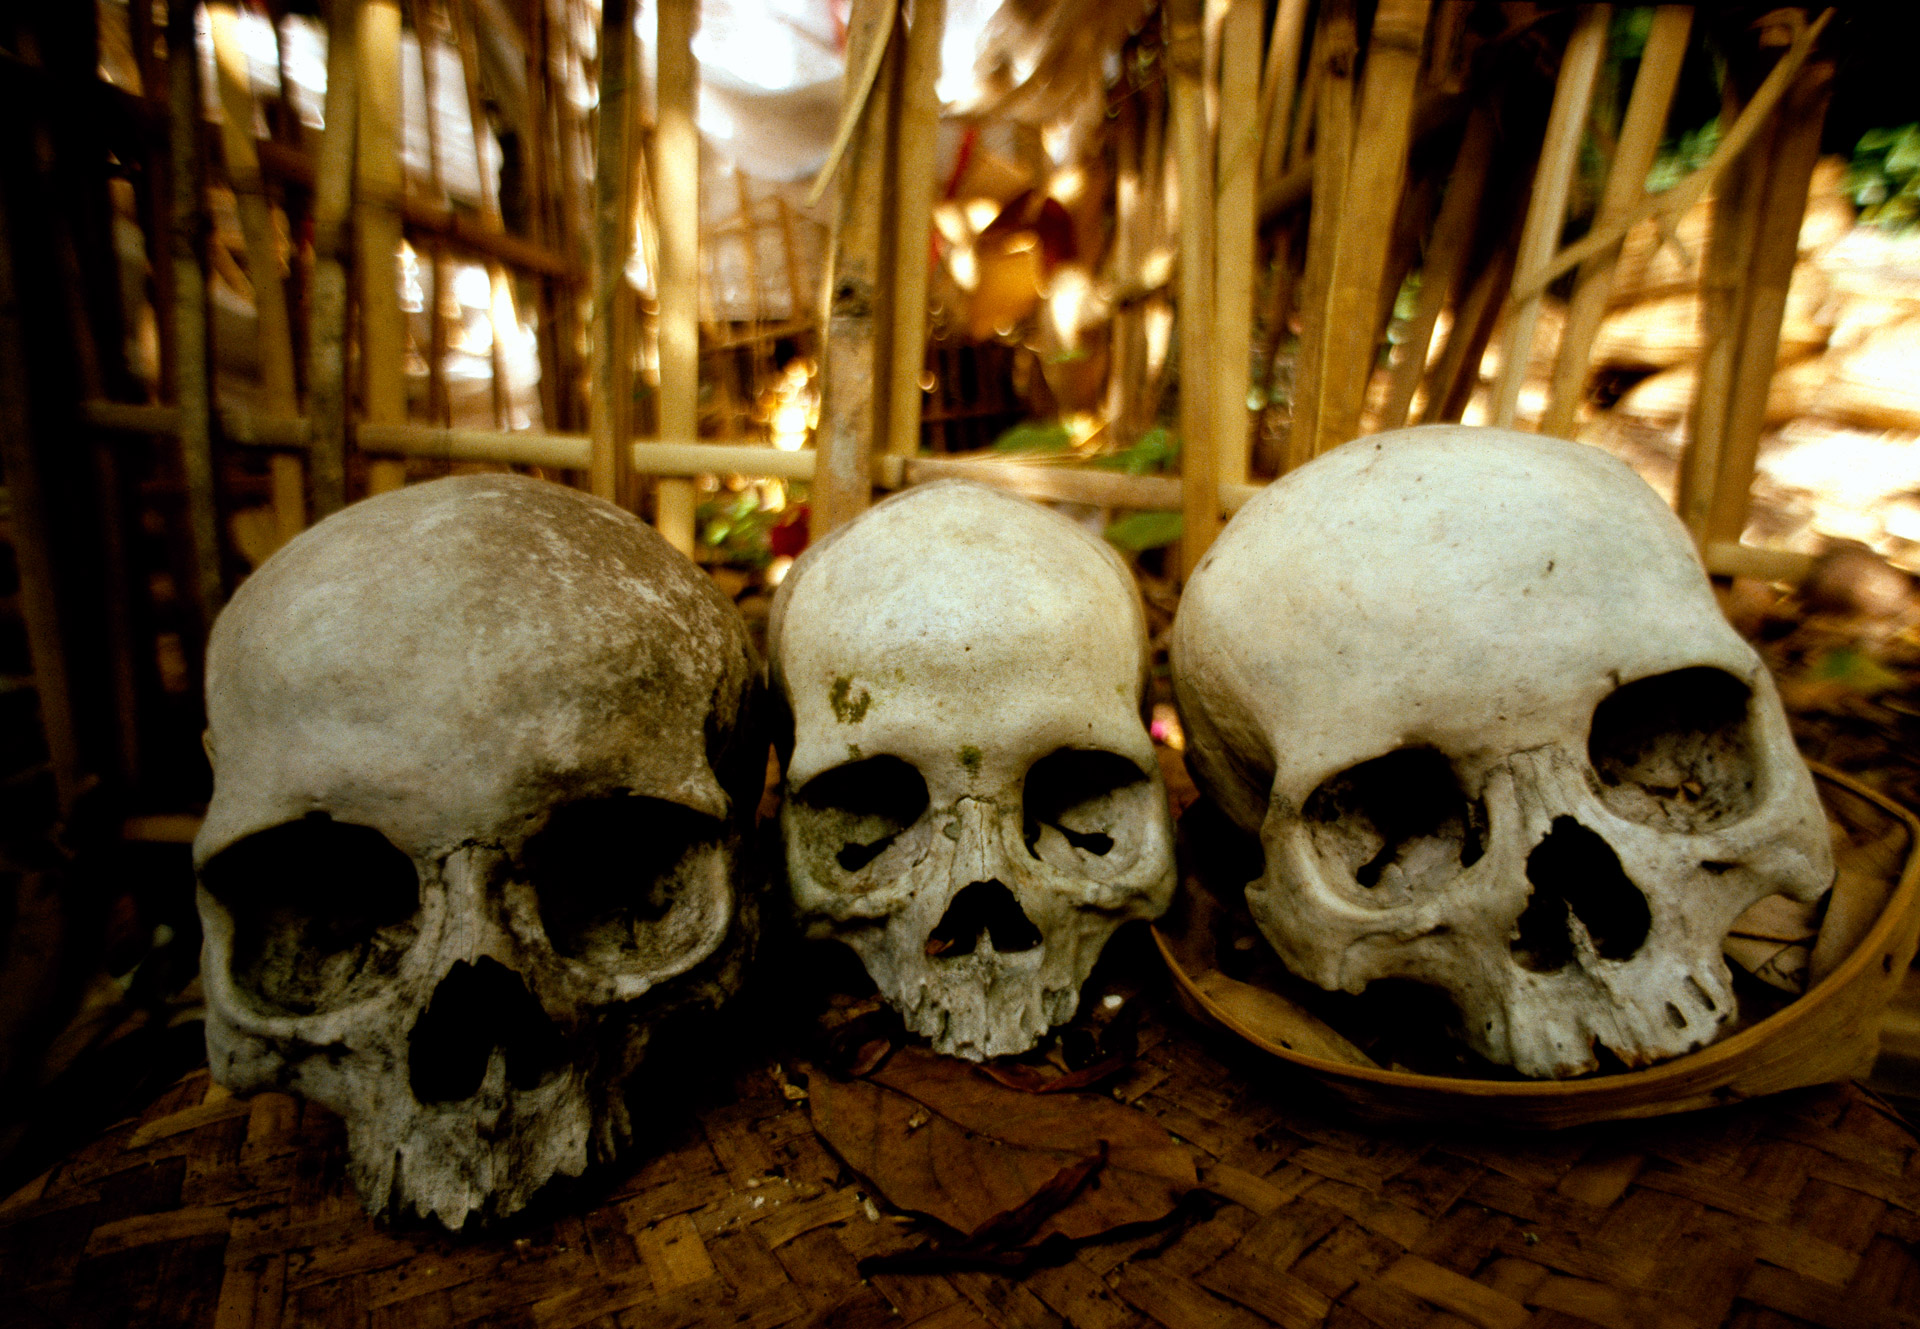 Human Skulls at an open air burial site in Bali